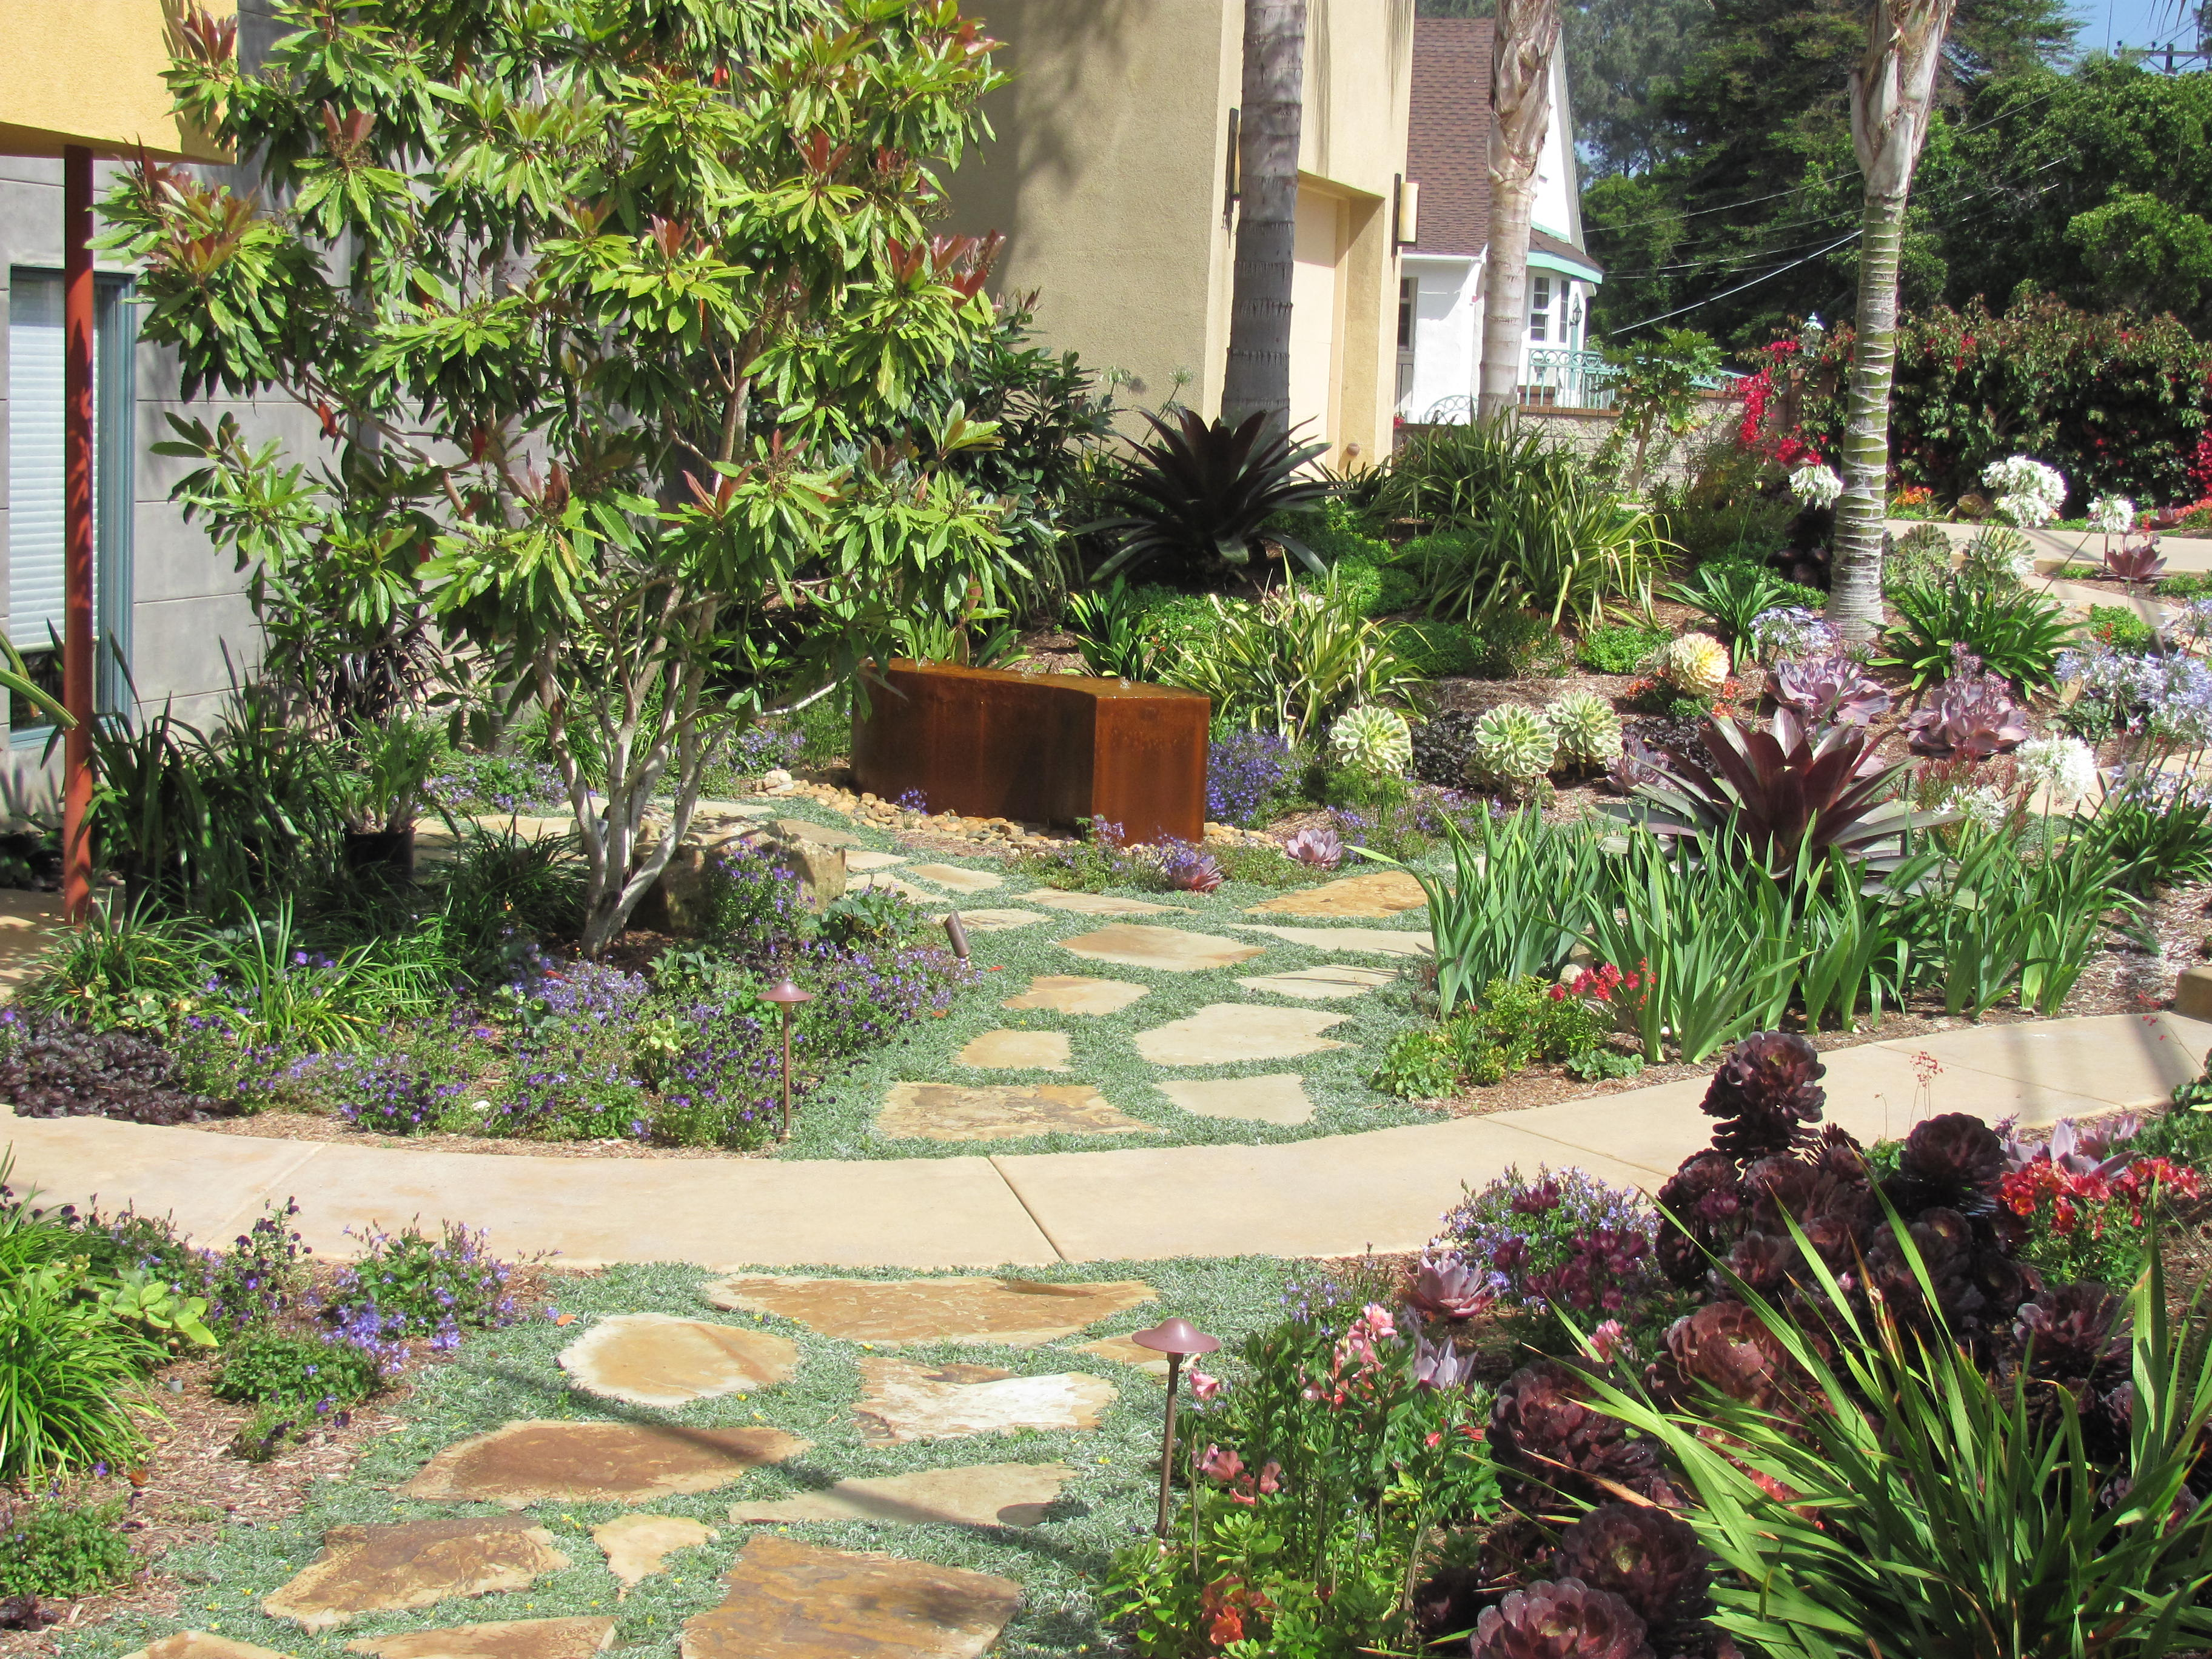 a flagstone path bisects the front garden